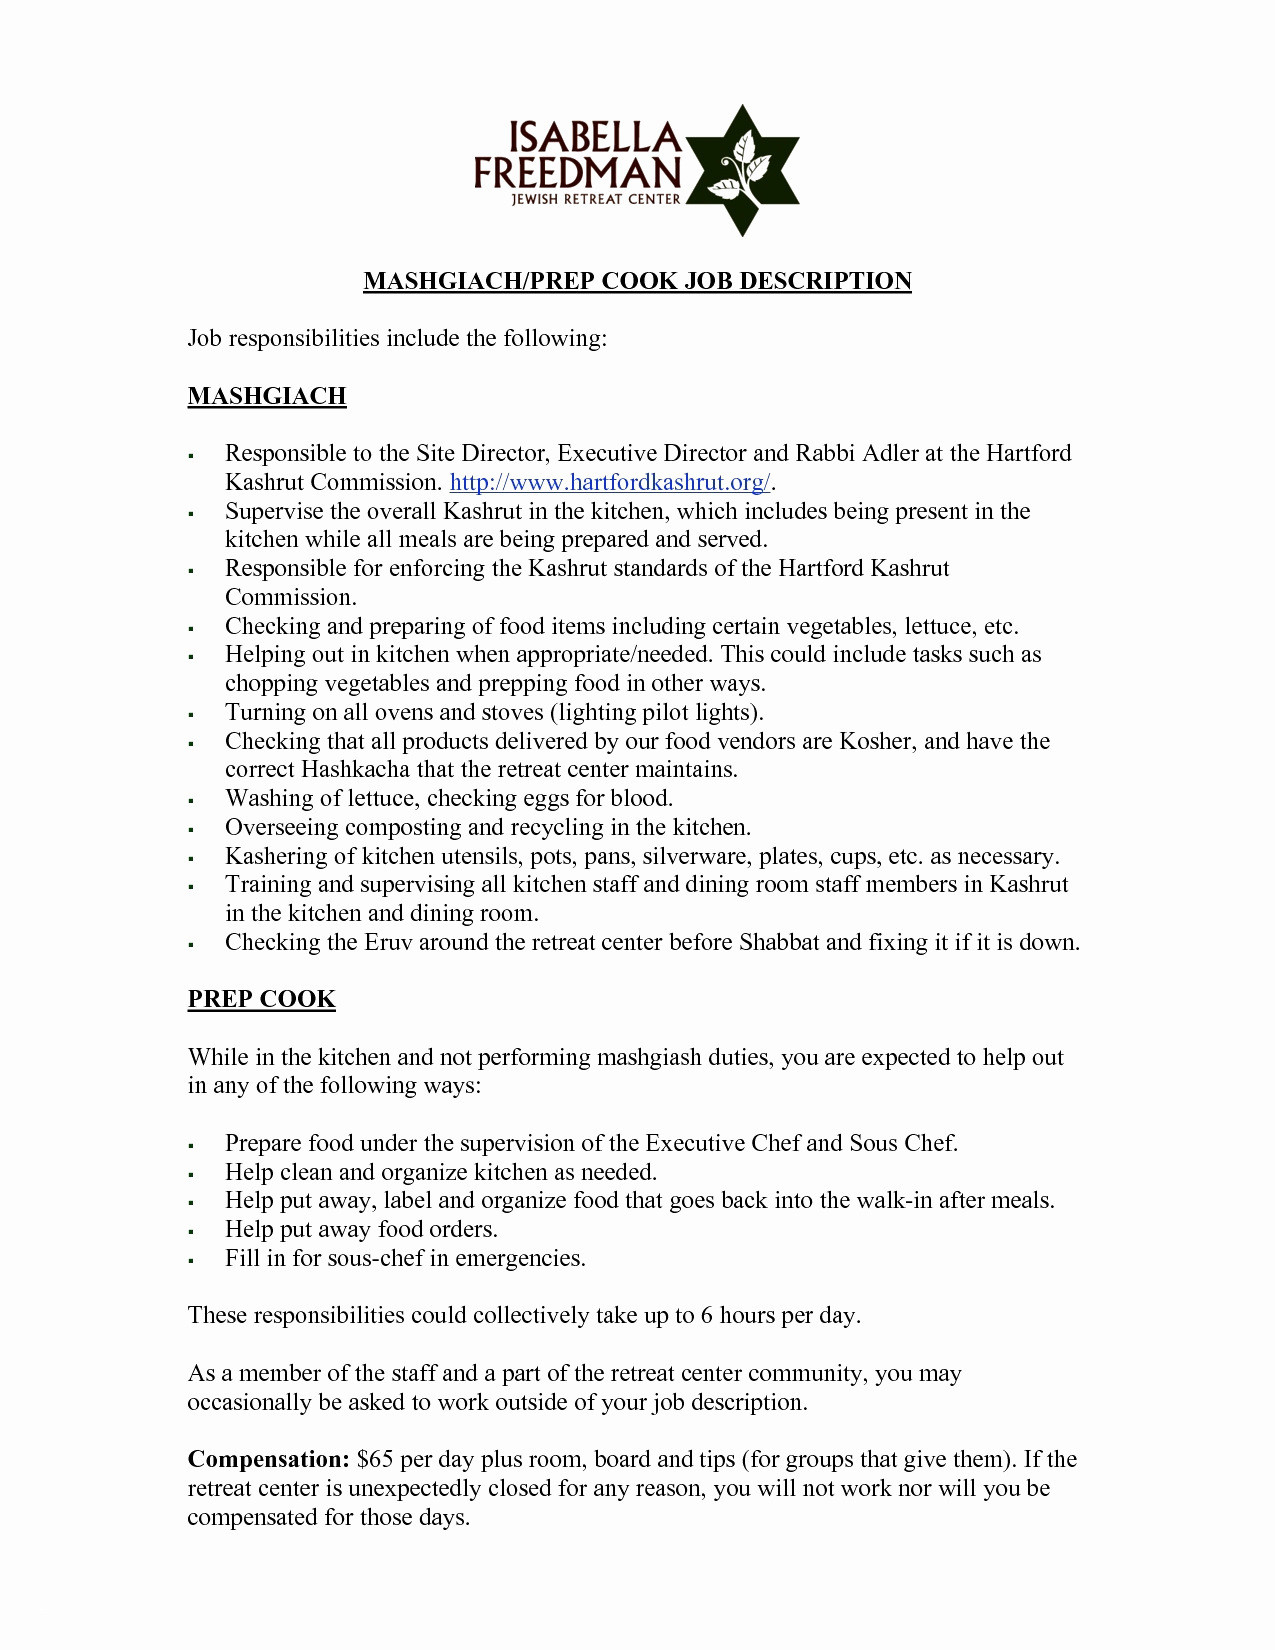 Stand Out Cover Letter Template - How to Make A Cover Letter Stand Out Beautiful Resume Doc Template